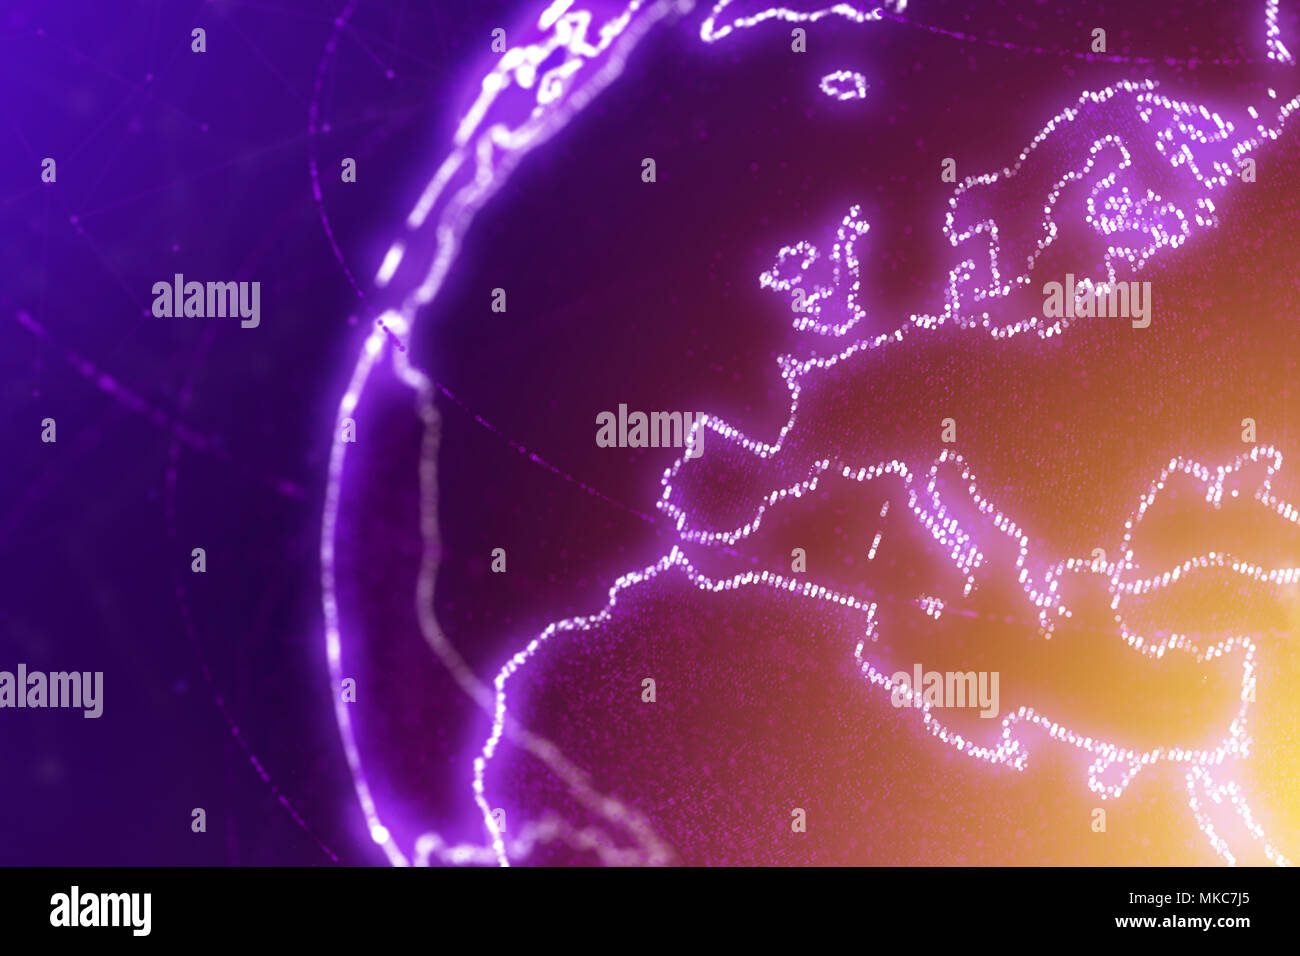 Europe continent,section of the world map, abstract illustration - Stock Image